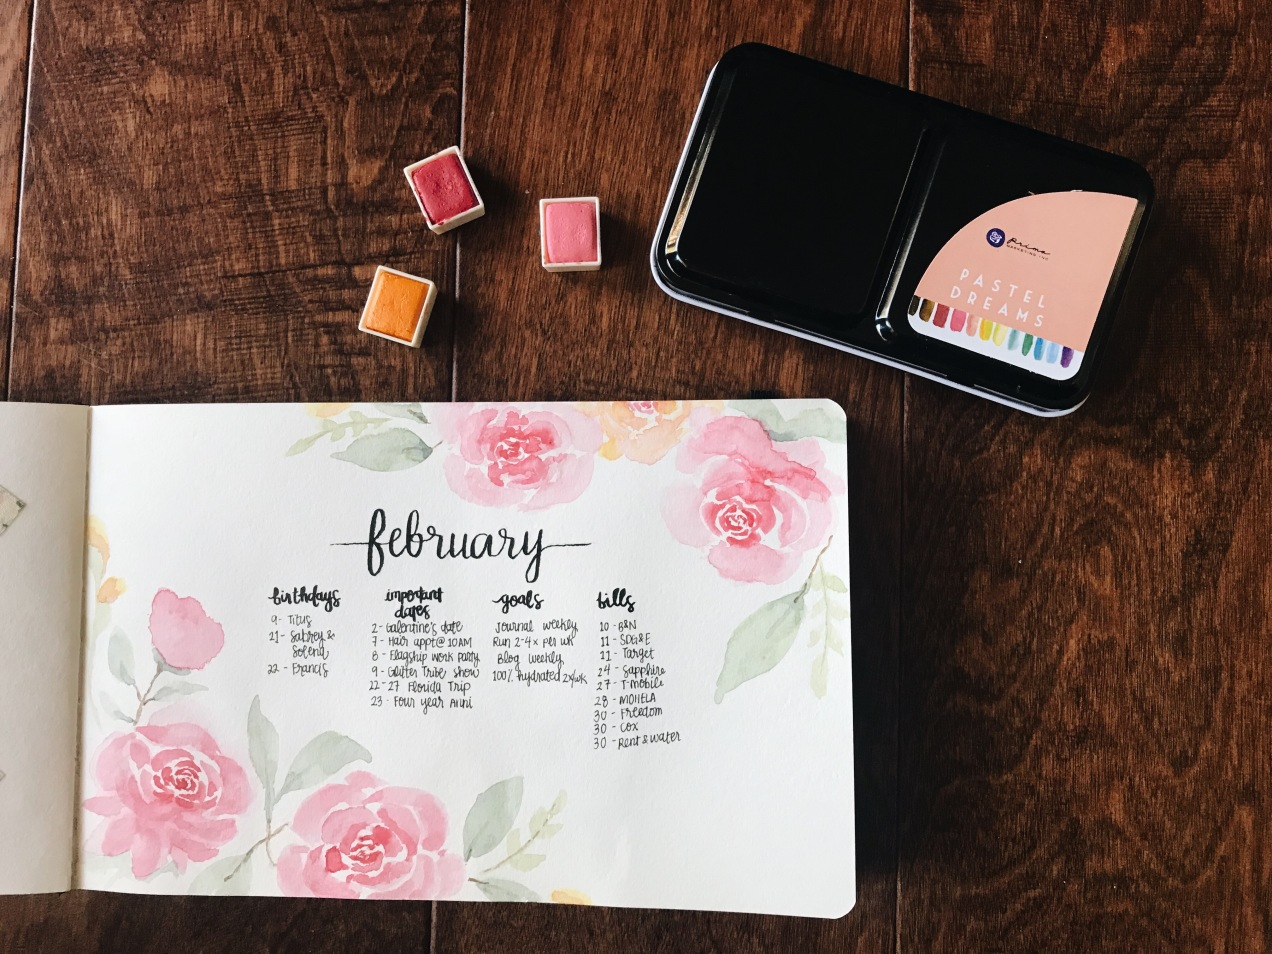 Bullet Journal February Update Watercolor Prima Marketing Pastel Dreams Self Care